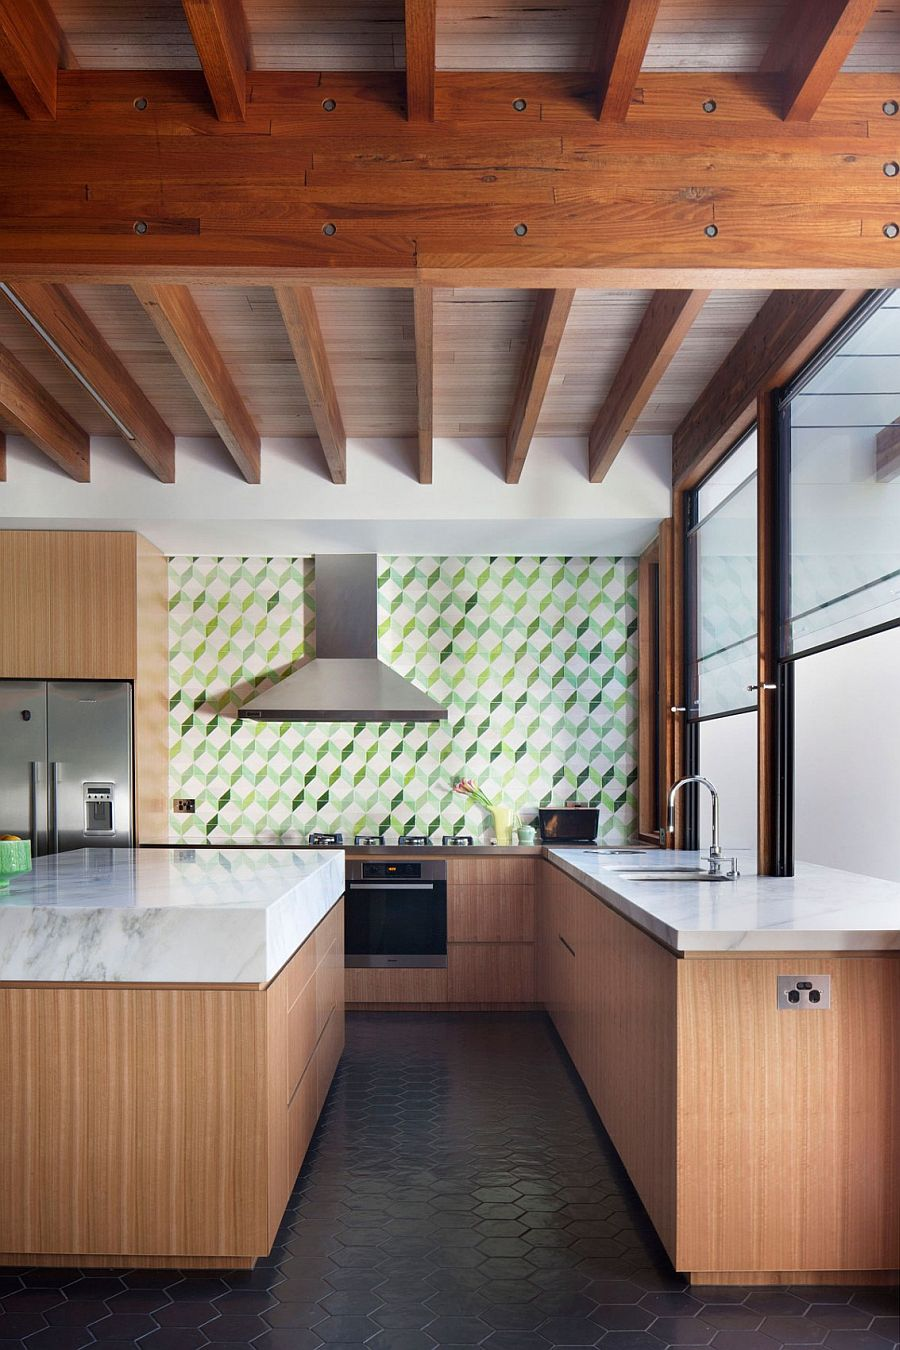 Tiled backsplash in the kitchen brings 3D Pattern to the interior